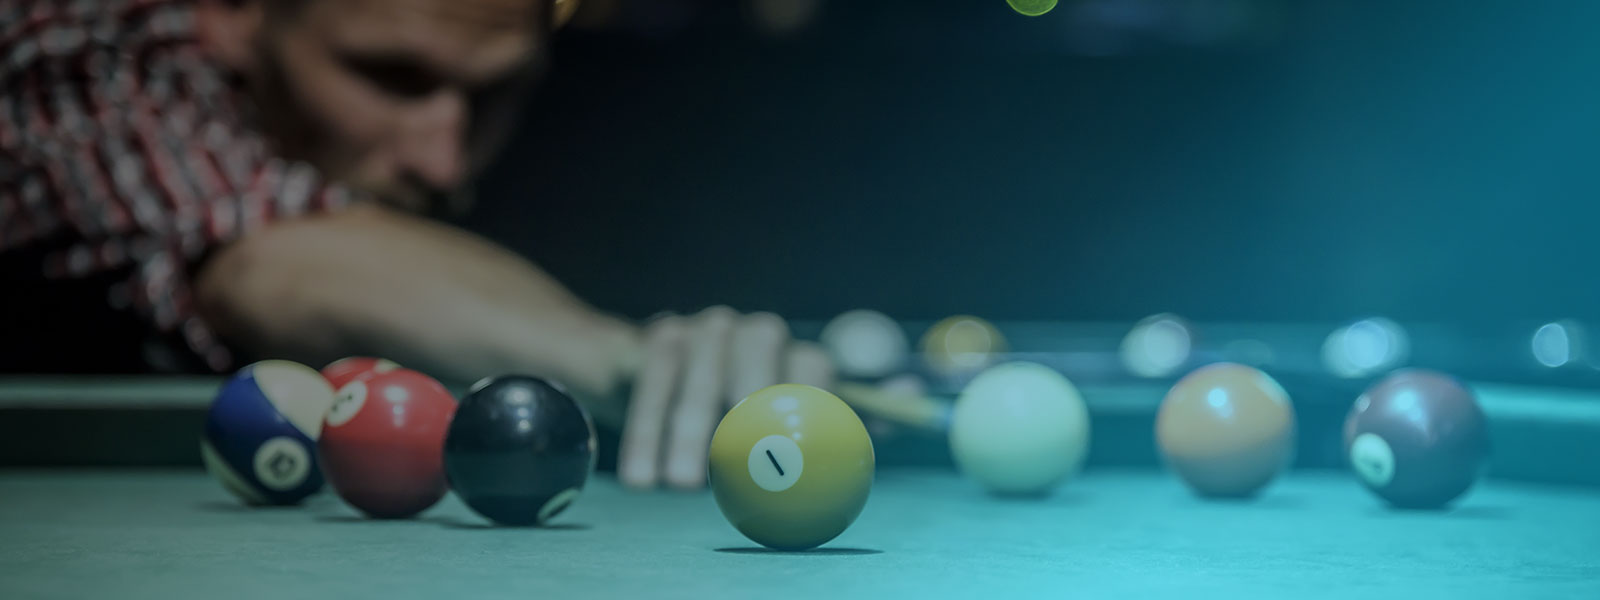 Man bent over a pool table with several pool balls